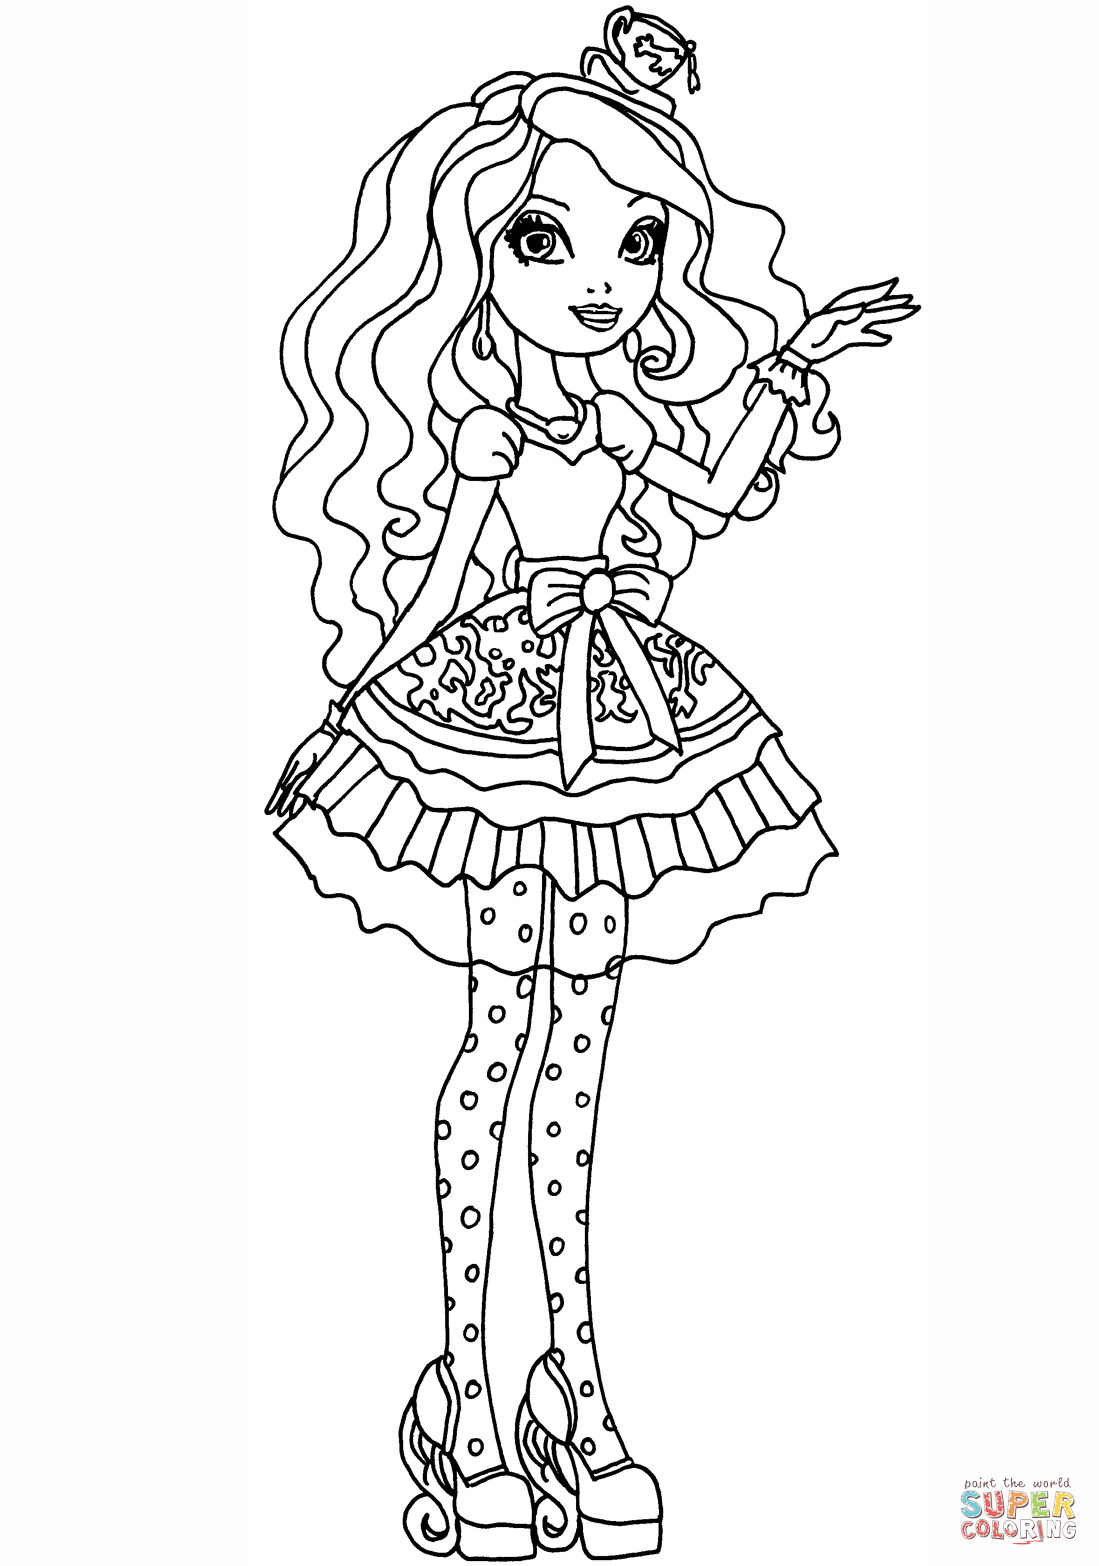 coloring pages monster high värityskuva monster high deuce gorgon coloring page free printable värityskuva monster high coloring pages